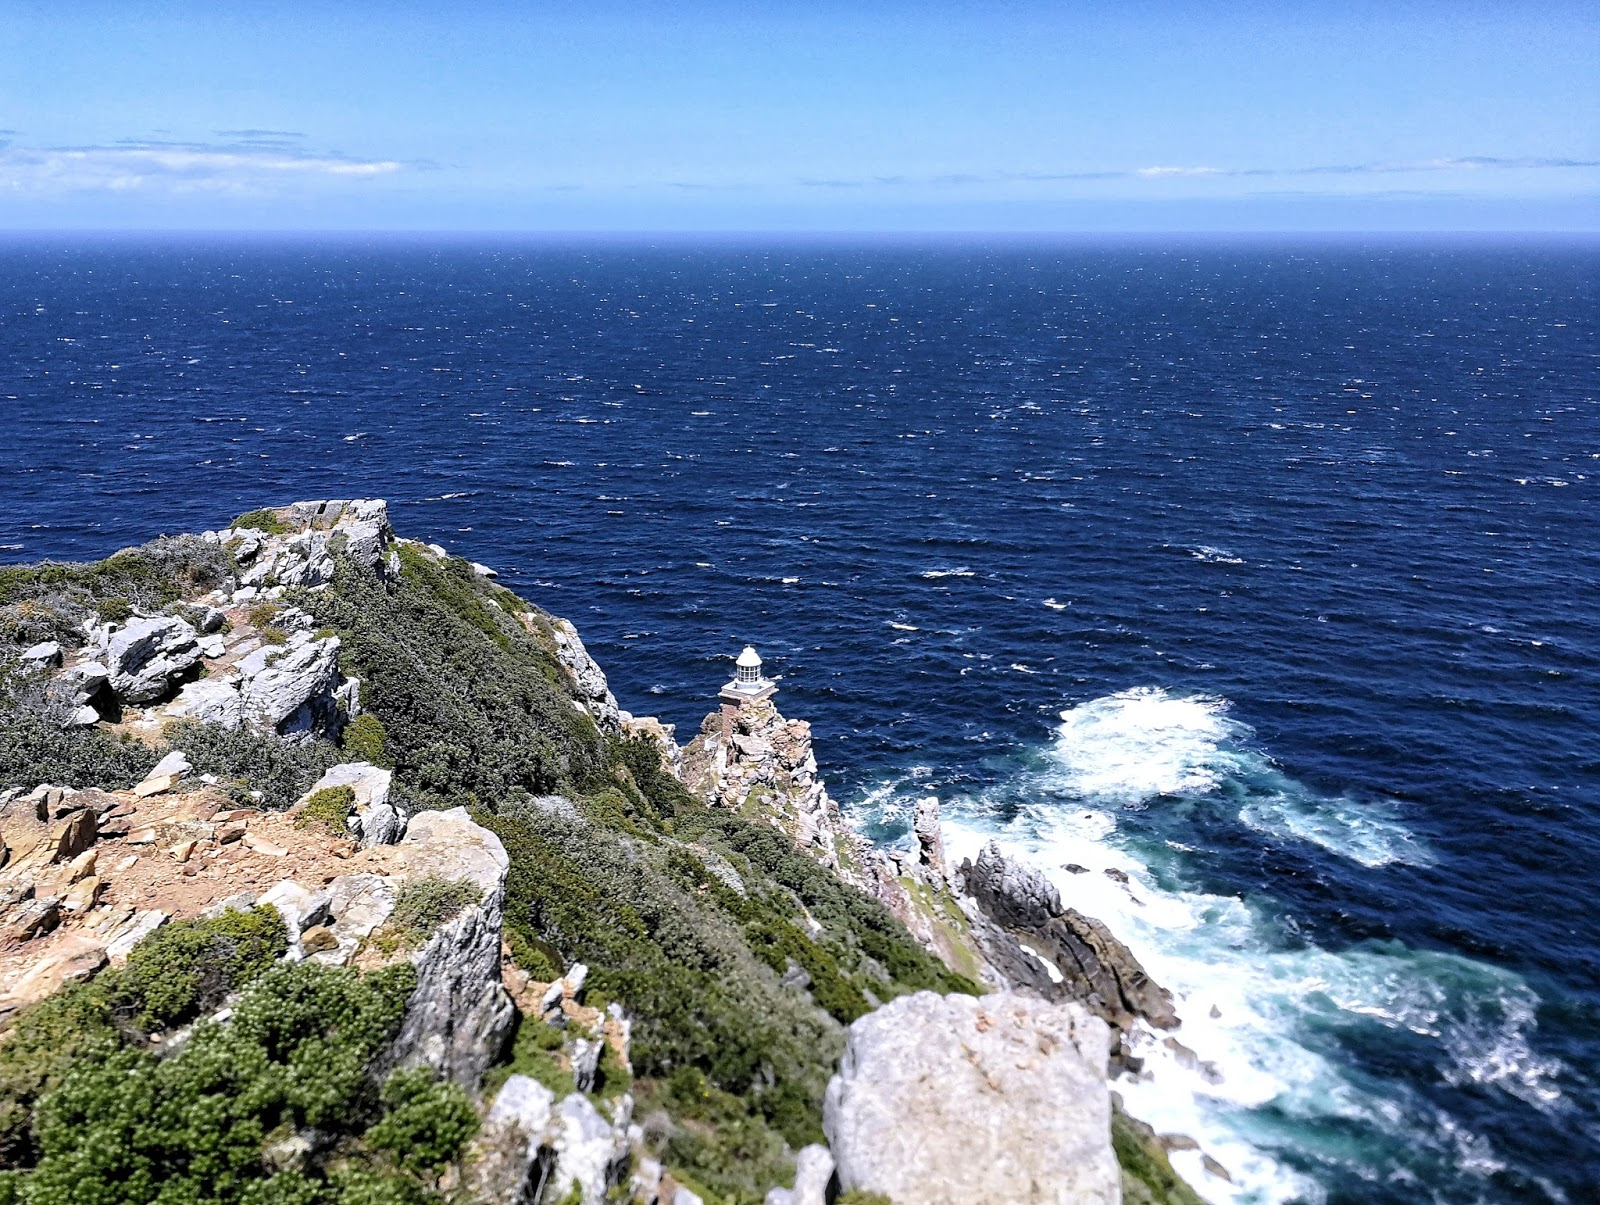 Cape of Good Hope, Cape Point, Cape Town, Etelä-Afrikka, Hyväntoivonniemi, Kapkaupunki, South Africa